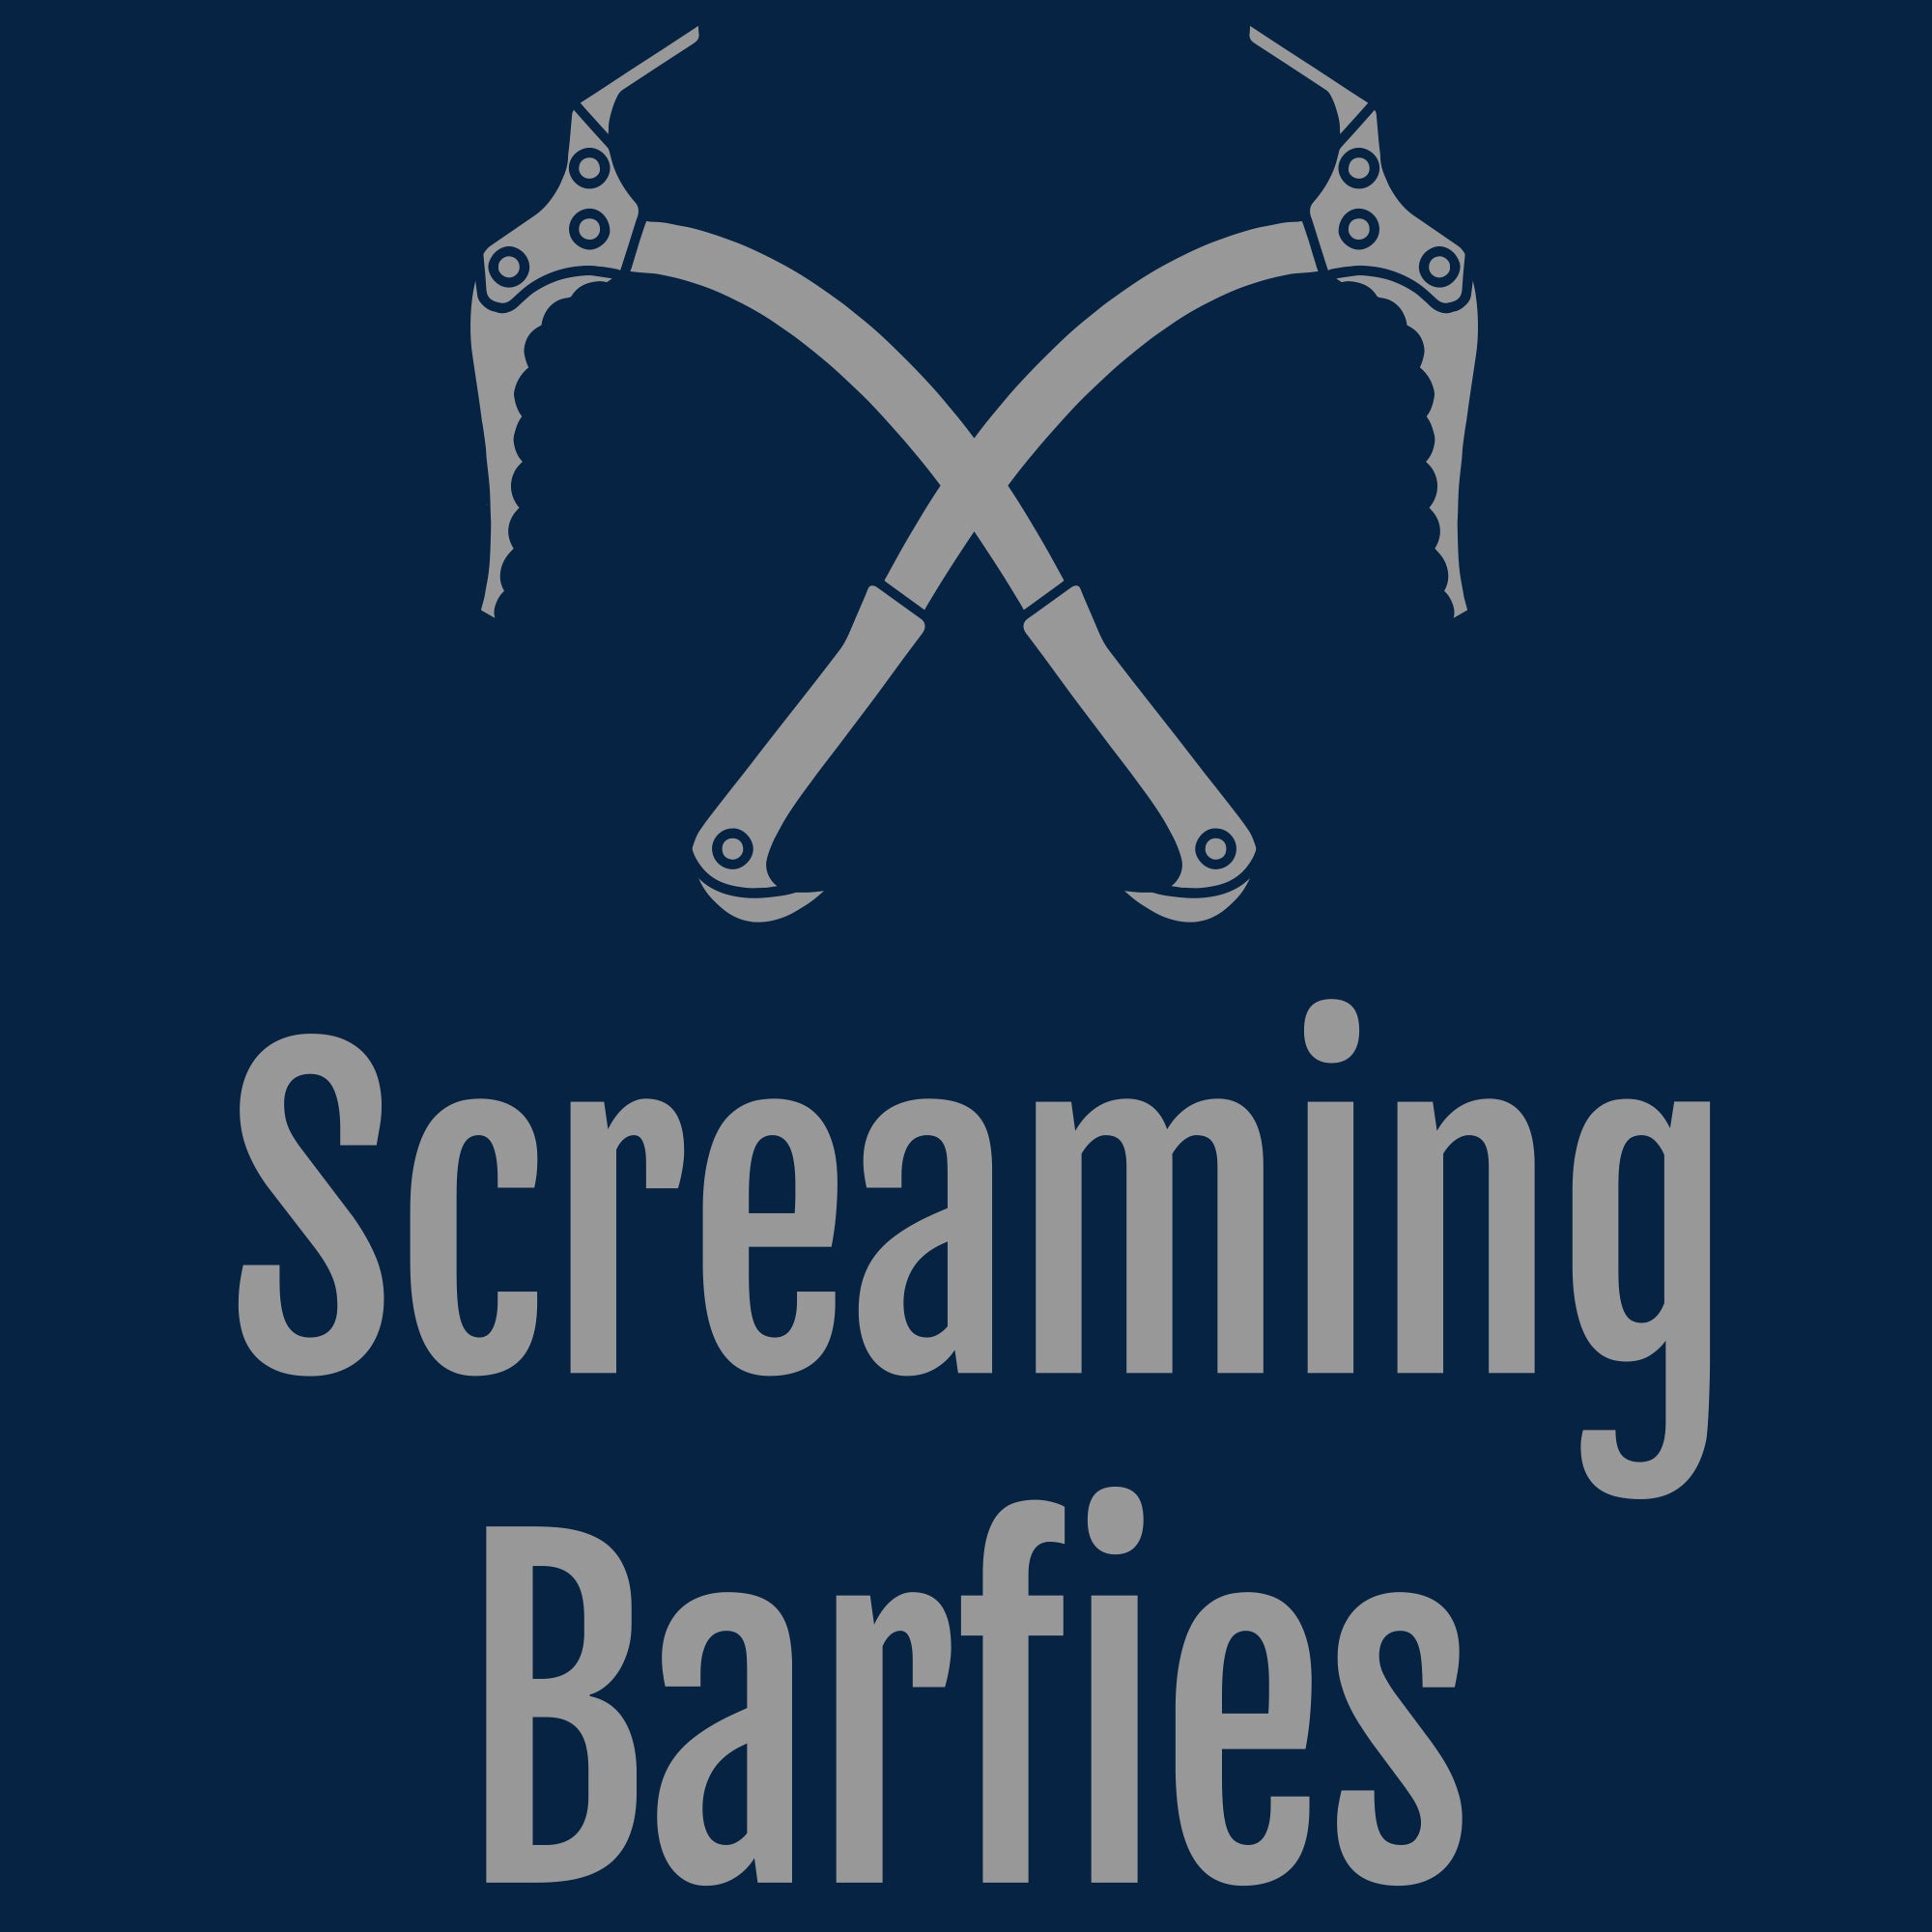 Screaming Barfies - Navy